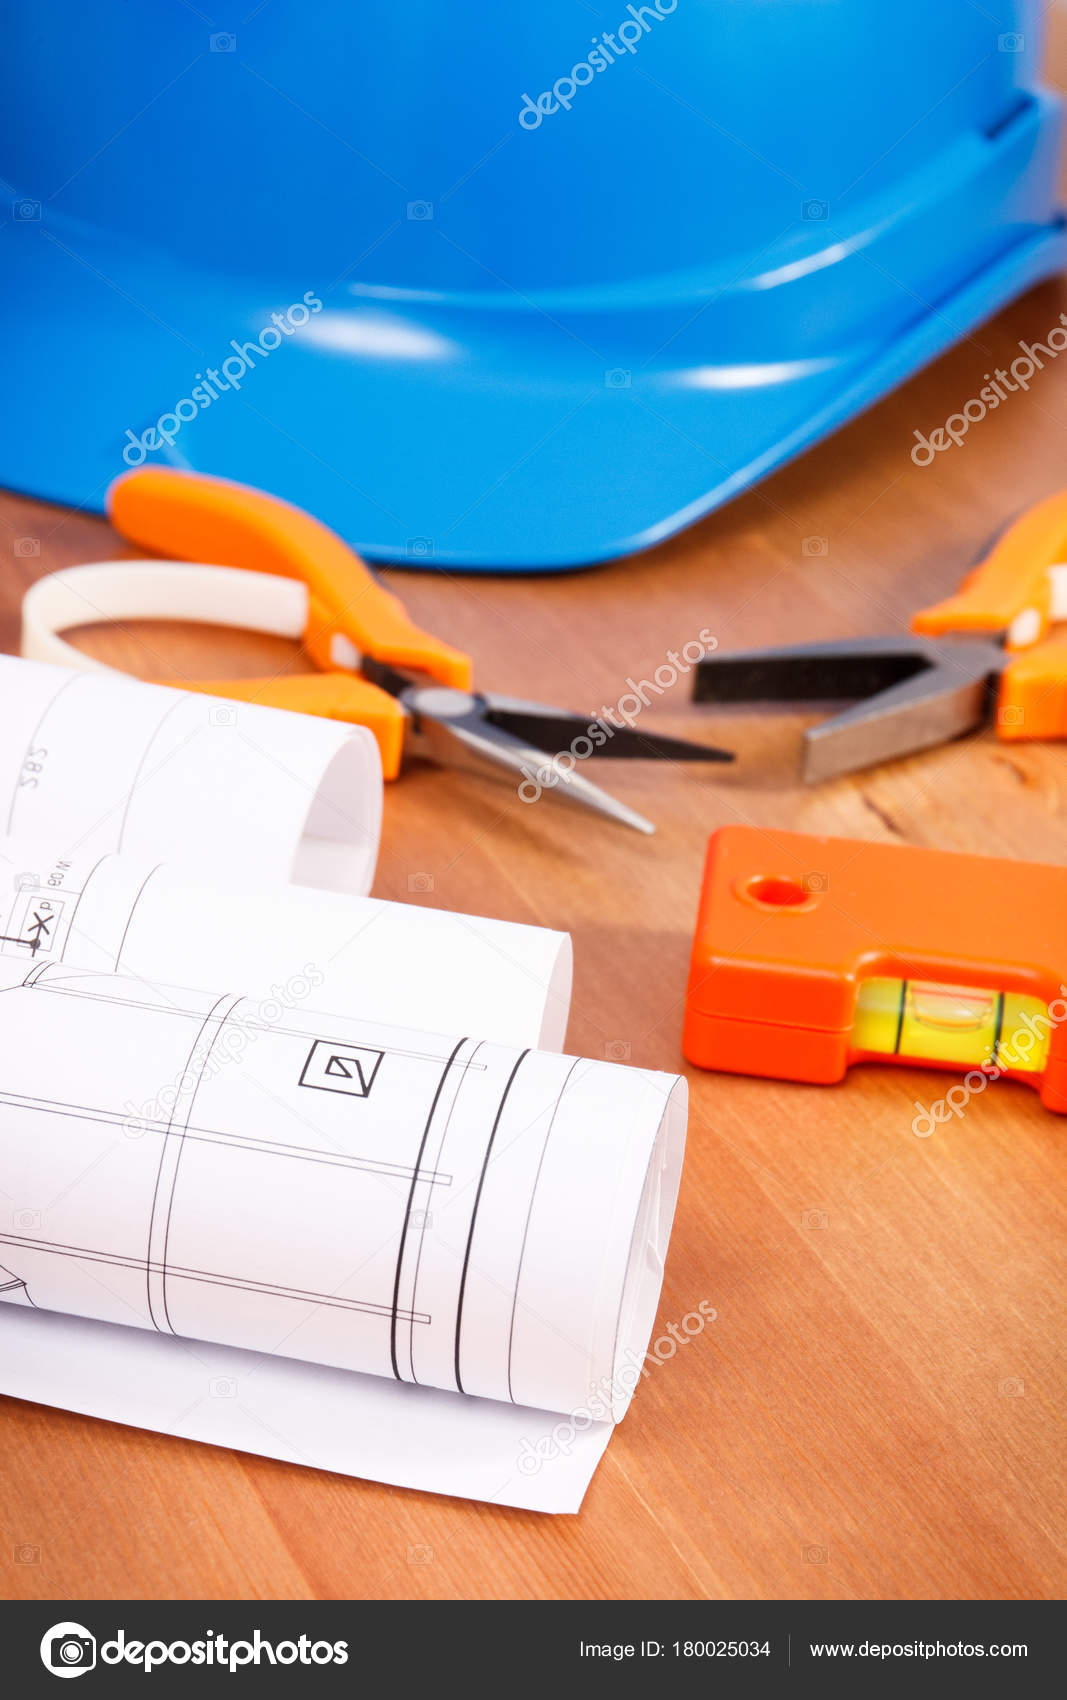 Electrical blueprint or drawings protective blue helmet and orange diagrams or electrical construction drawings protective blue helmet and orange work tools for engineer jobs photo by ratmaner malvernweather Image collections